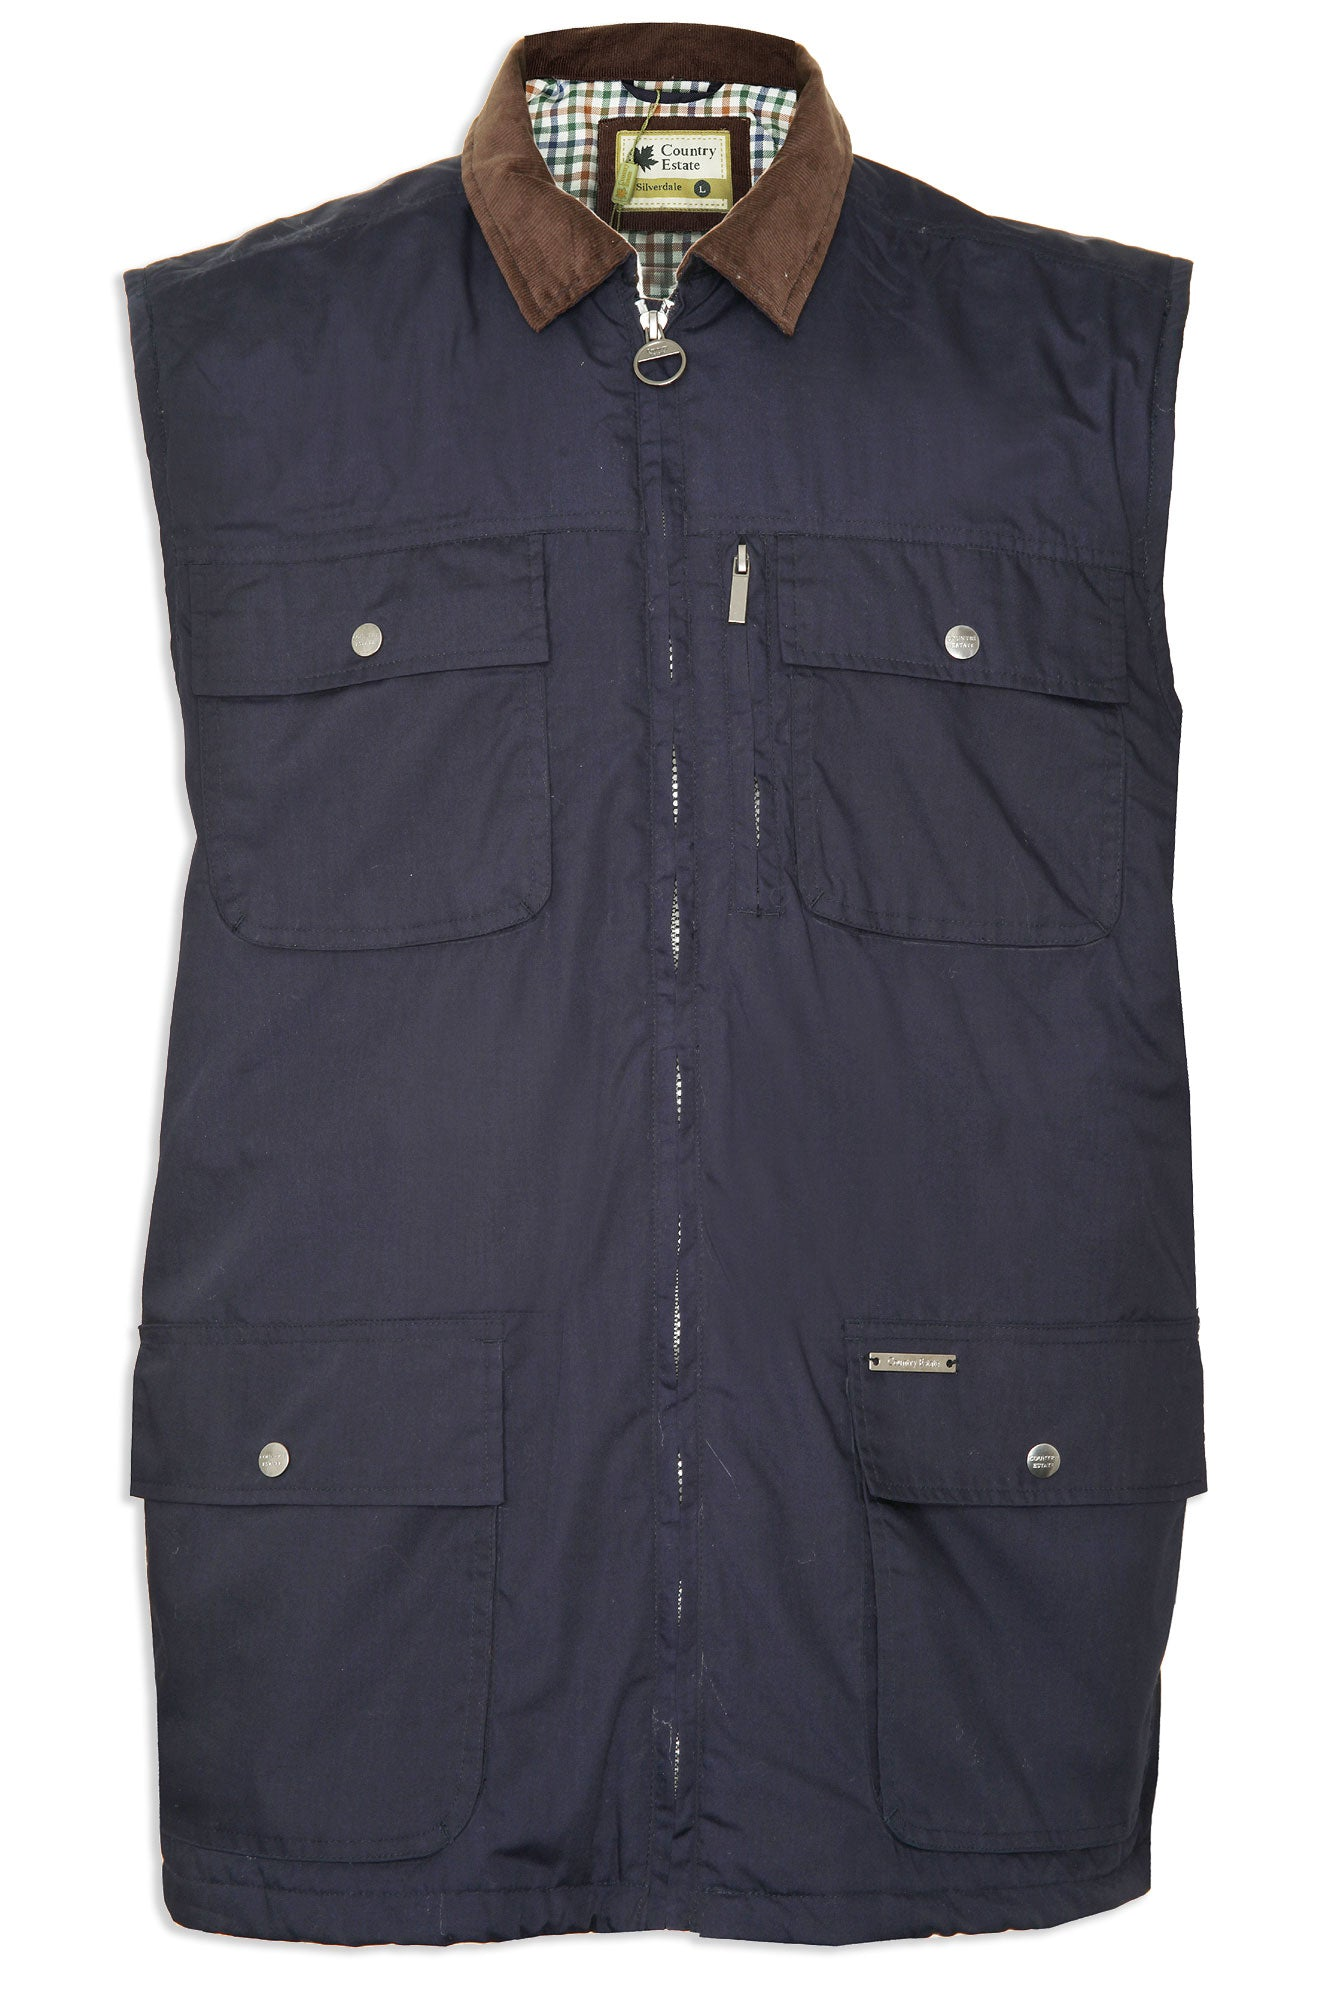 navy Silverdale Multi Pocket Waistcoat from Champion Outdoor